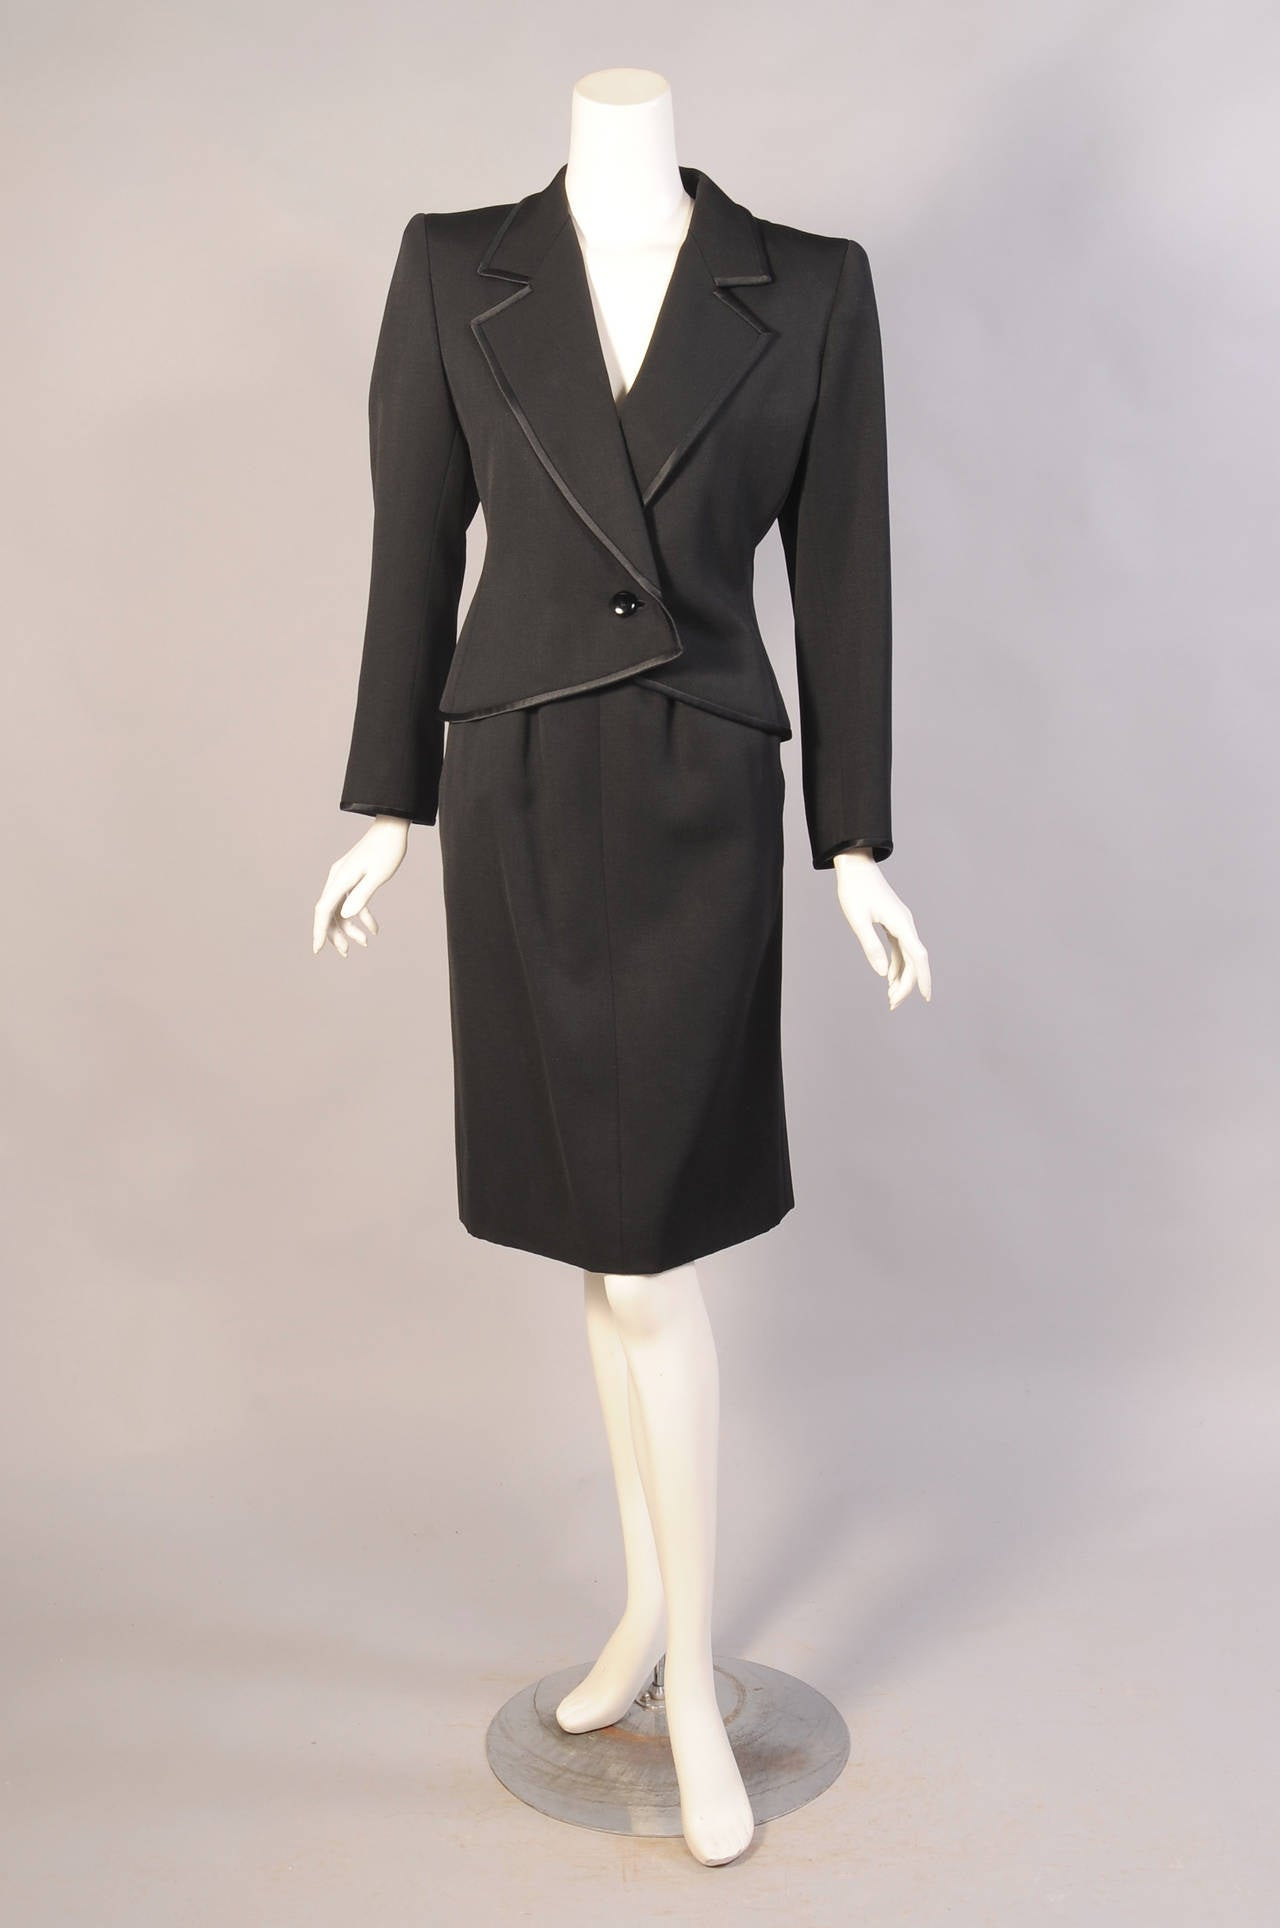 Black silk faille is accented with black silk satin on the lapels and cuffs of this one button Le Smoking suit from YSL. The straight skirt has two pockets and a left side zipper. Both pieces are fully lined in black silk and hand finished in the